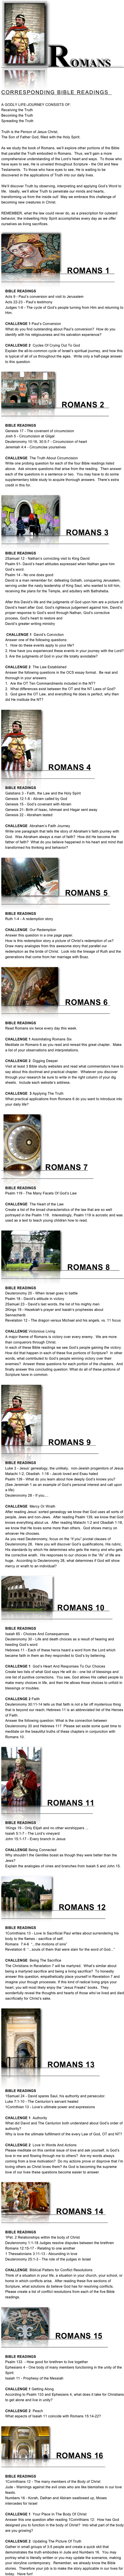 ROMANS CORRESPONDING BIBLE READINGS A GODLY LIFE-JOURNEY CONSISTS OF